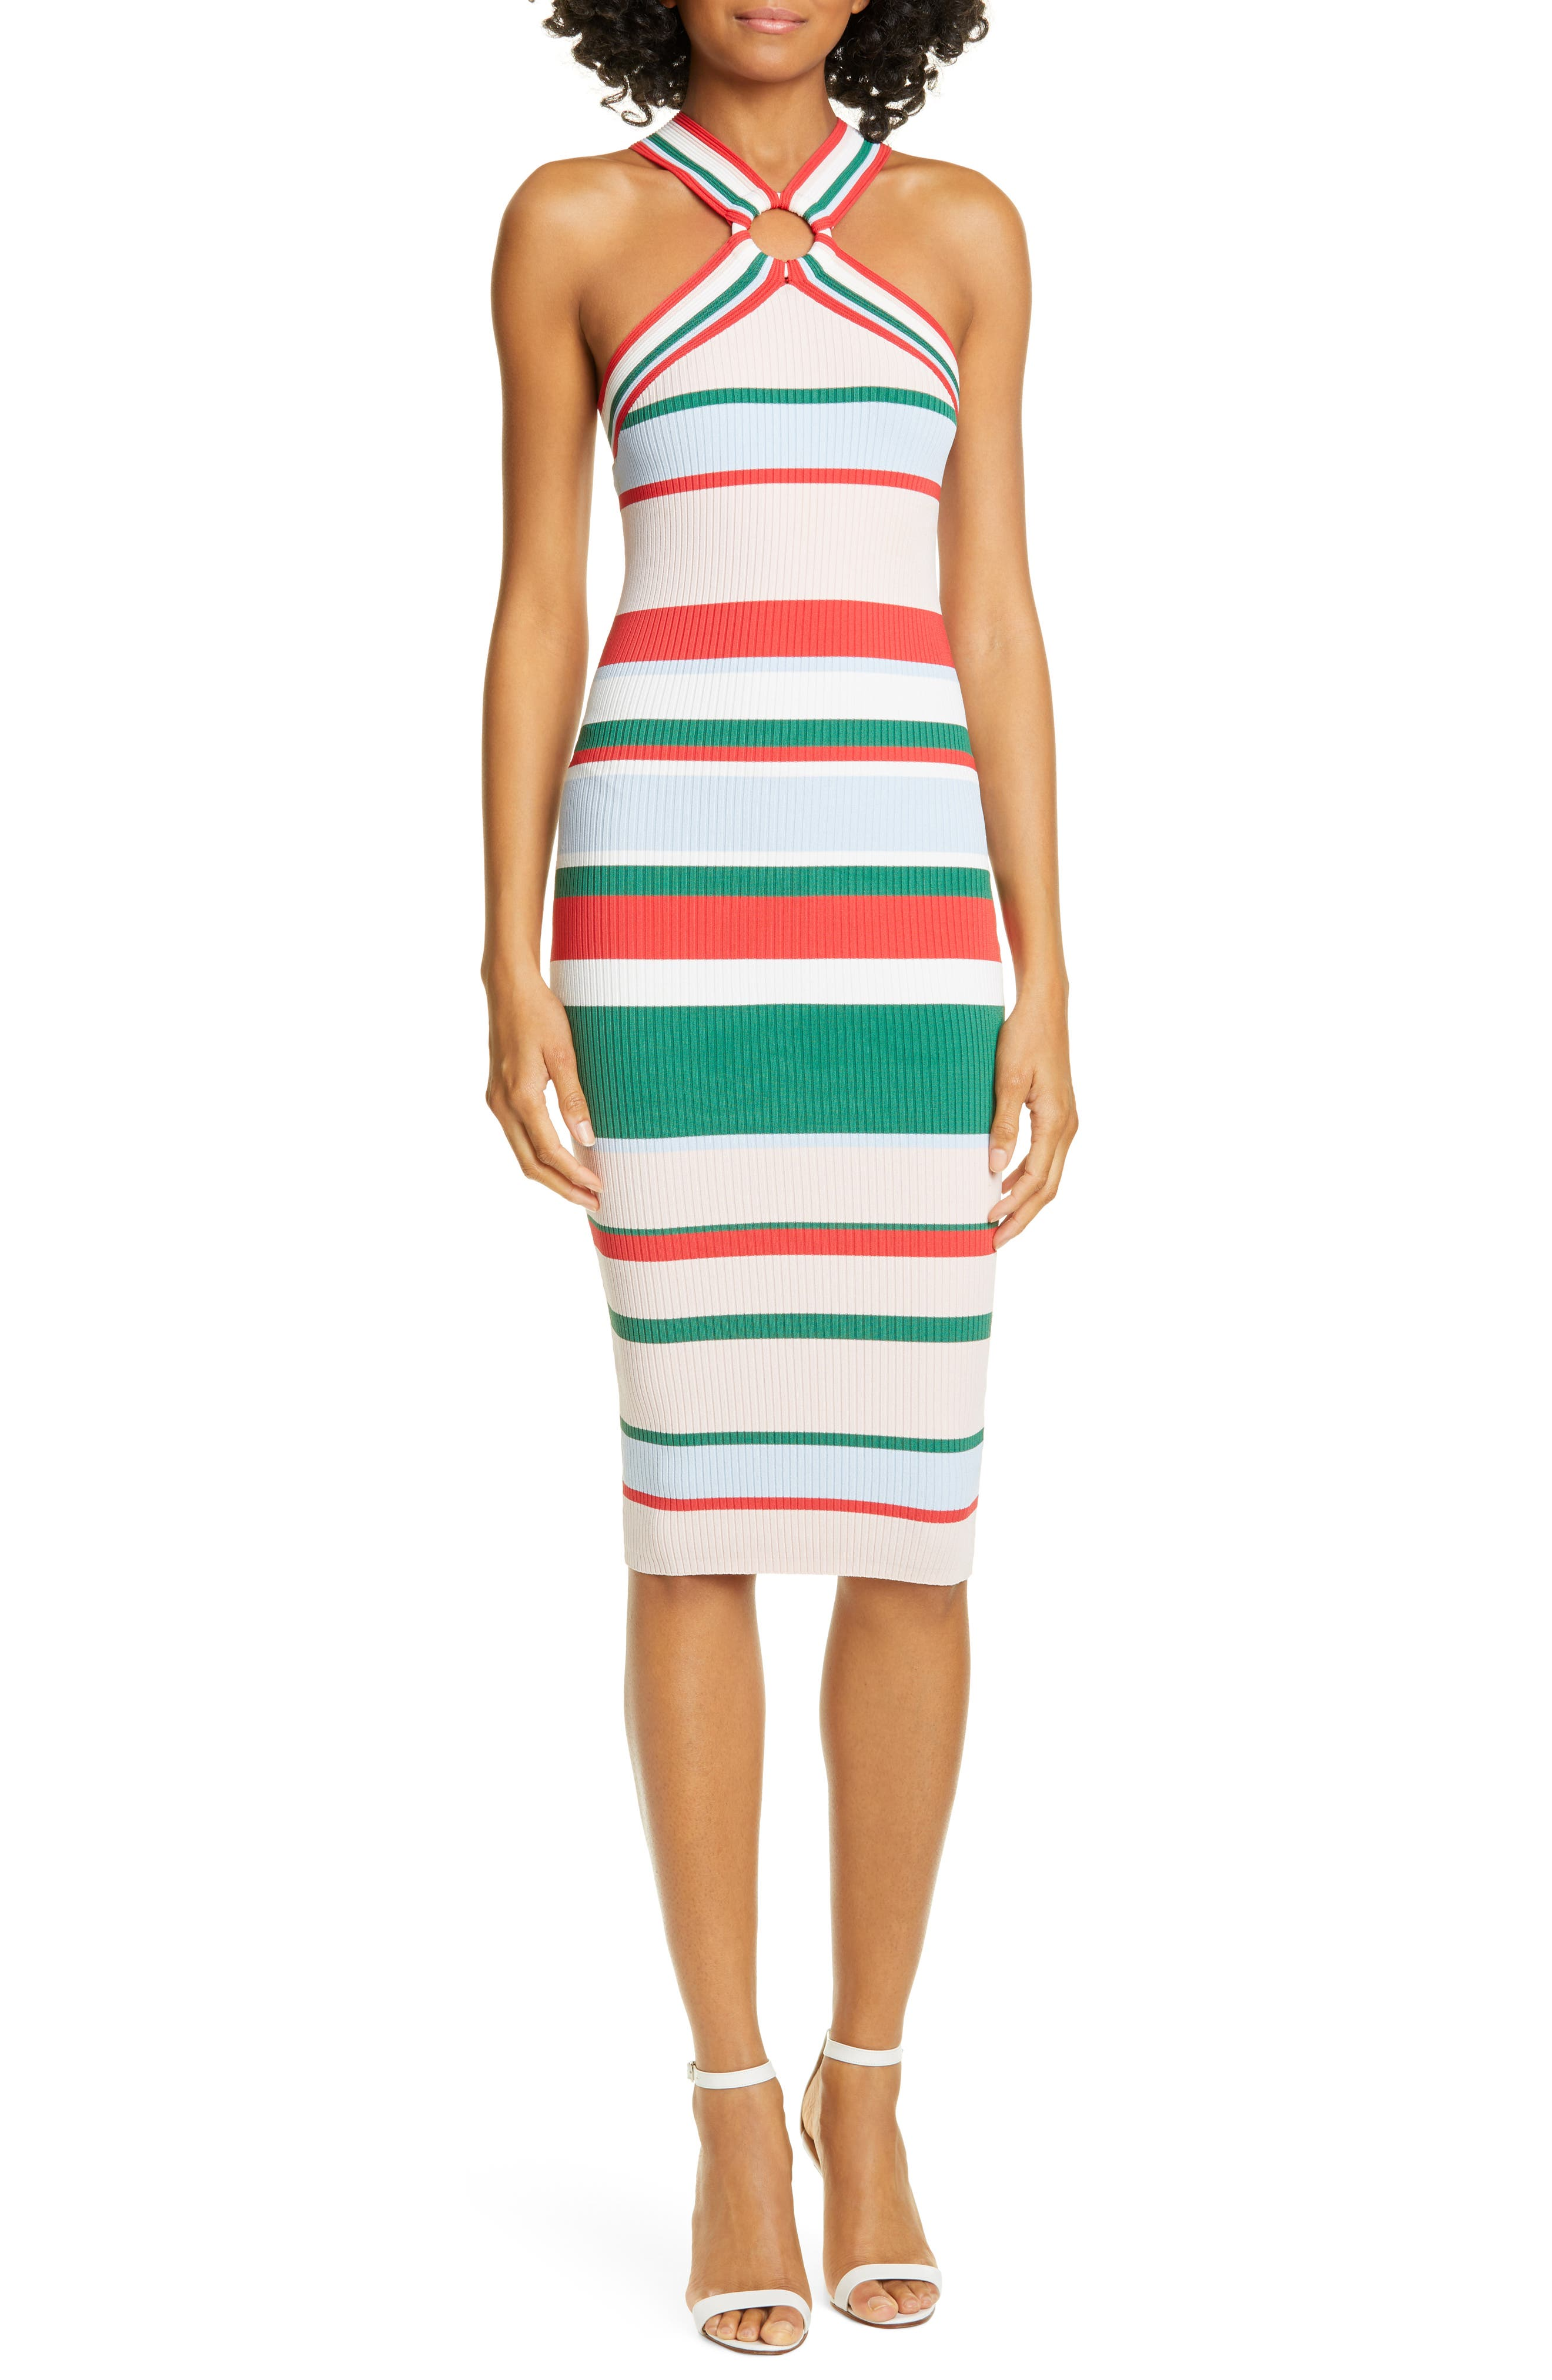 Ted Baker London Iyndiaa Tutti Frutti Body-Con Sweater Dress, White